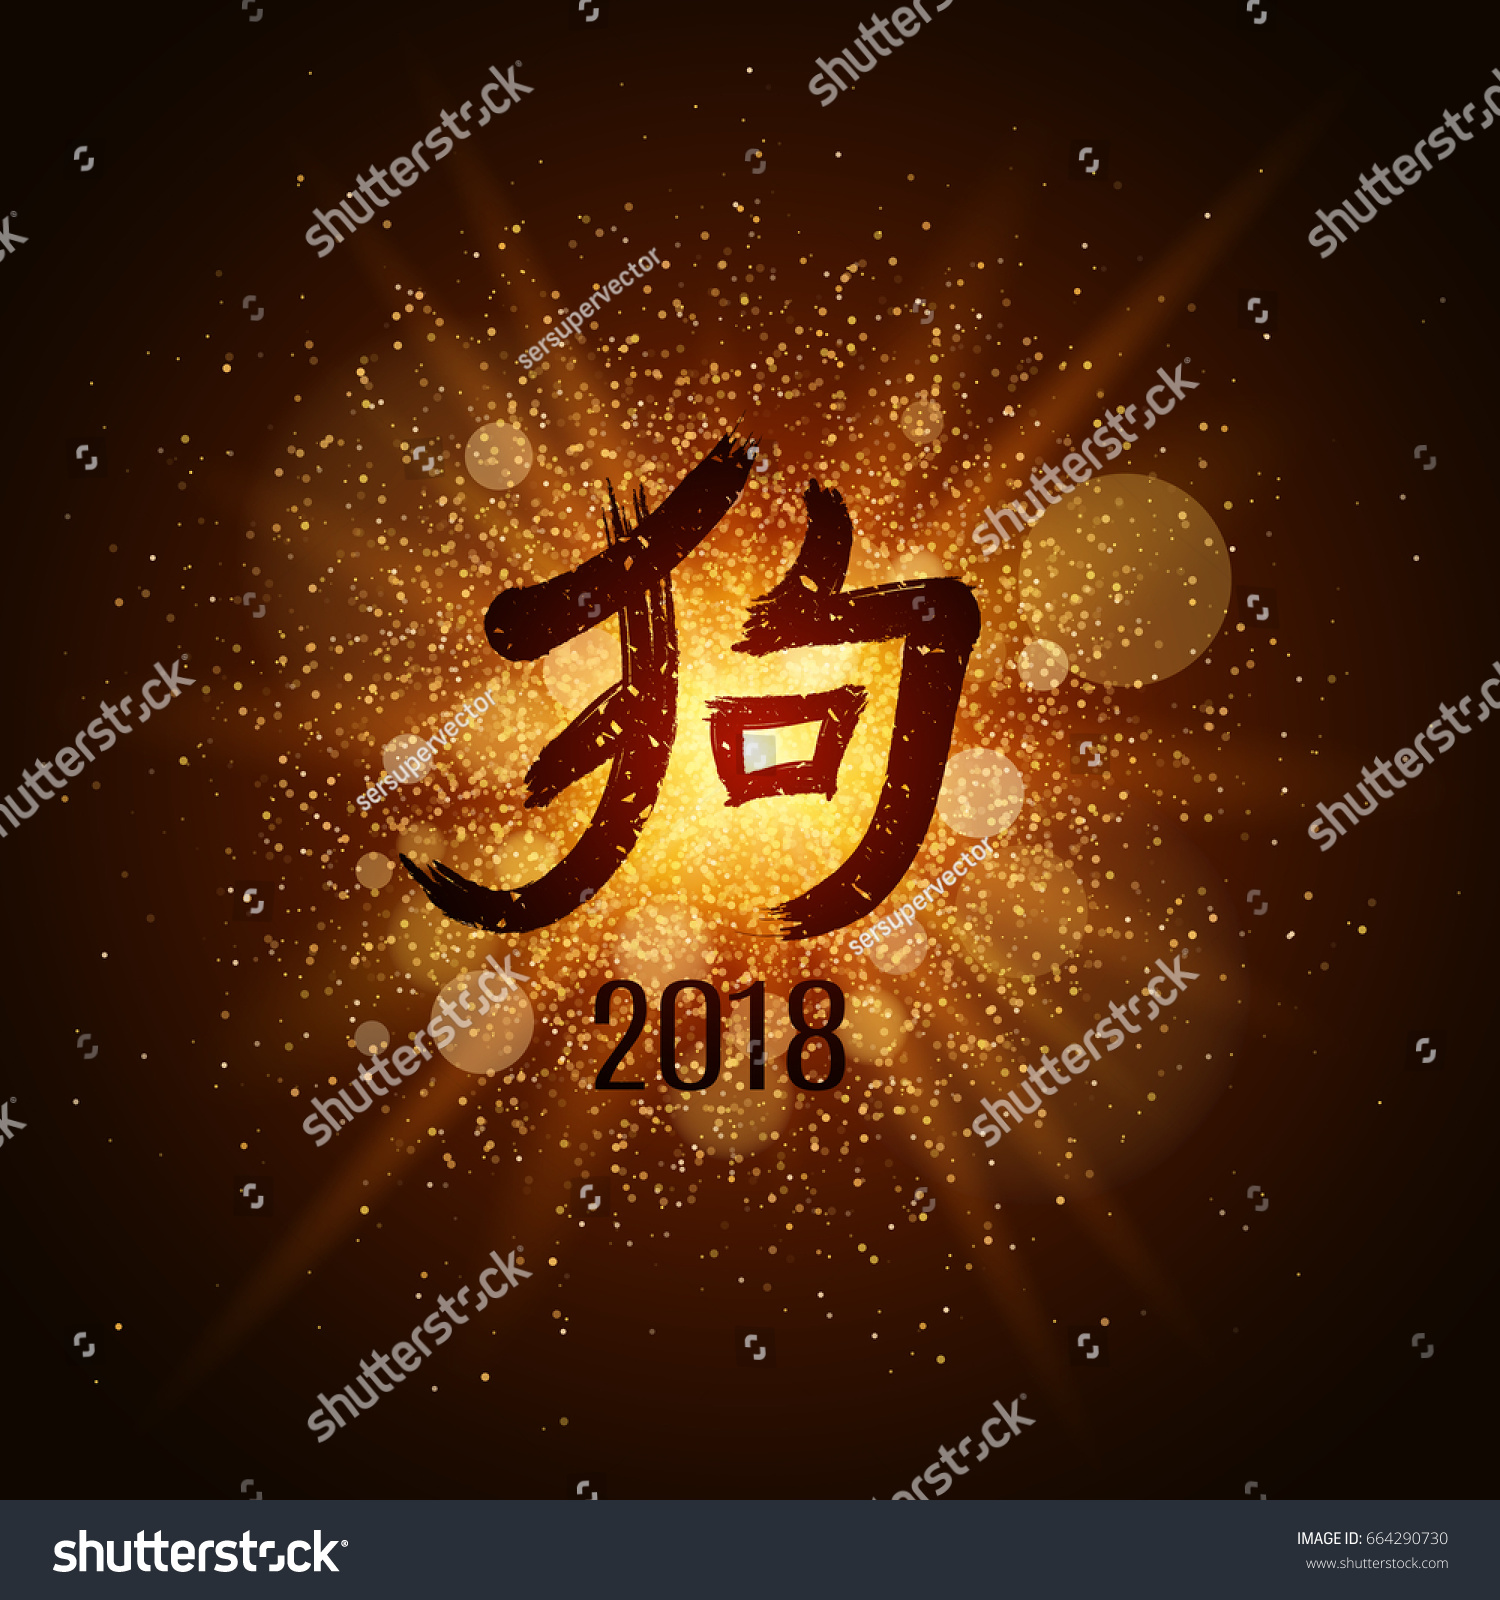 Gold Luminous Dust On Black Background Stock Vector Royalty Free